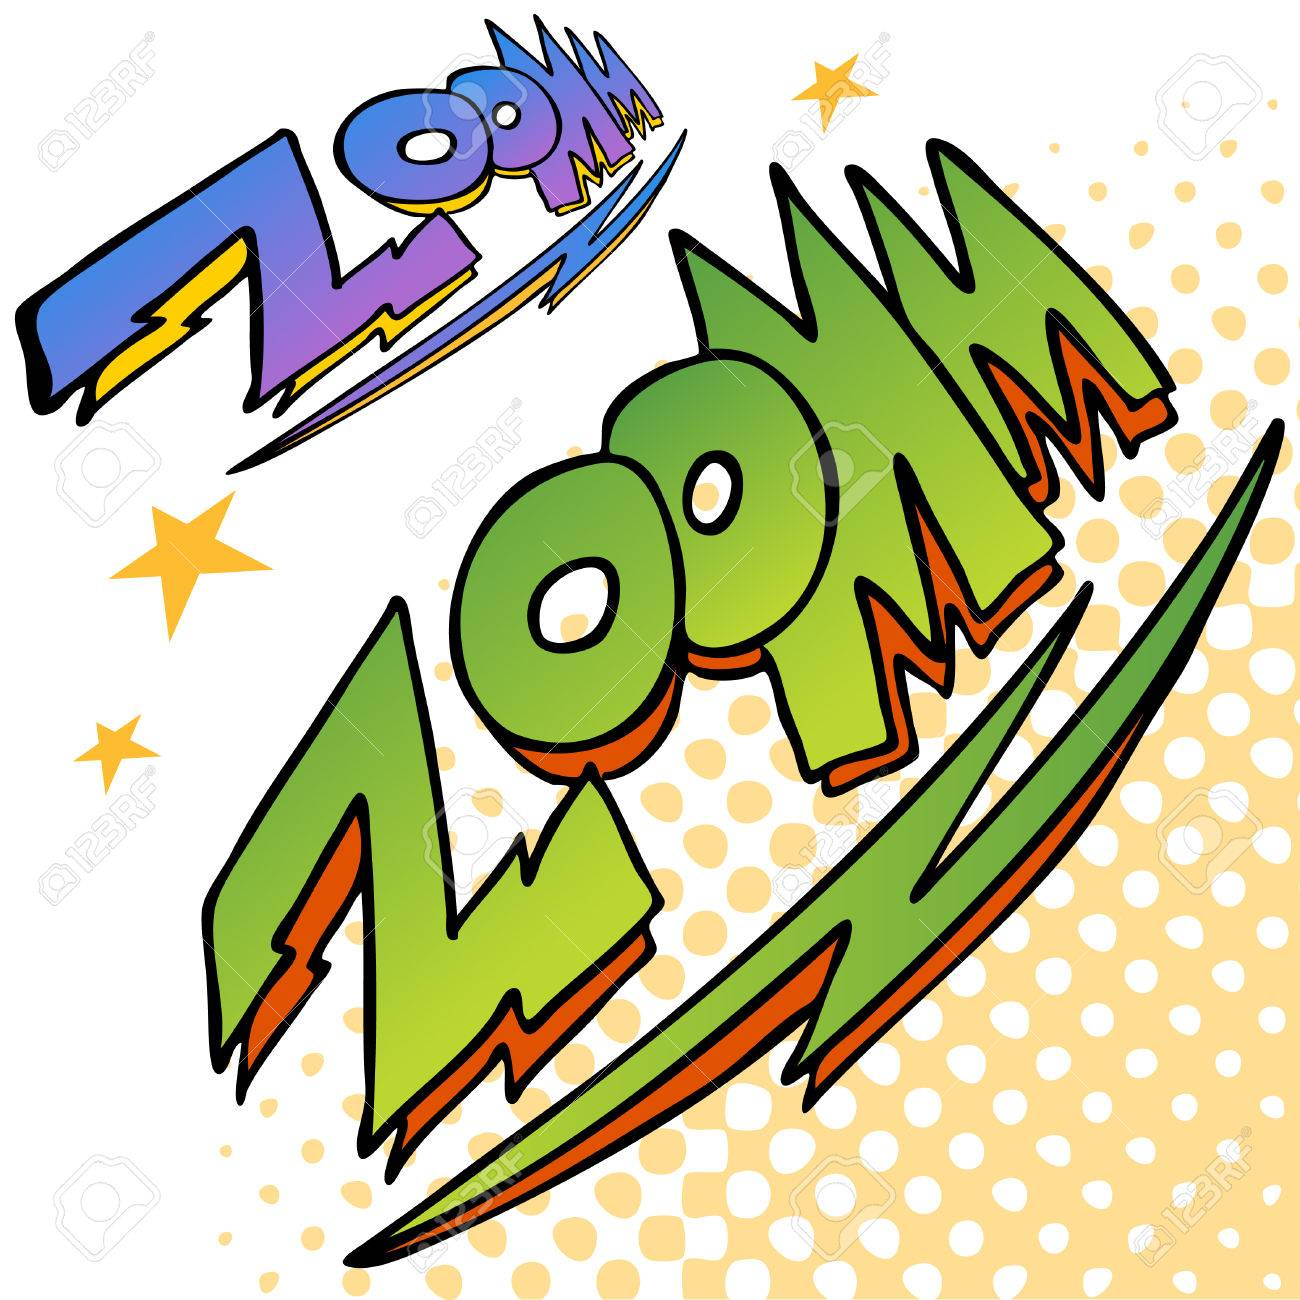 An image of zoom bolt sound text. Stock Vector - 8130404